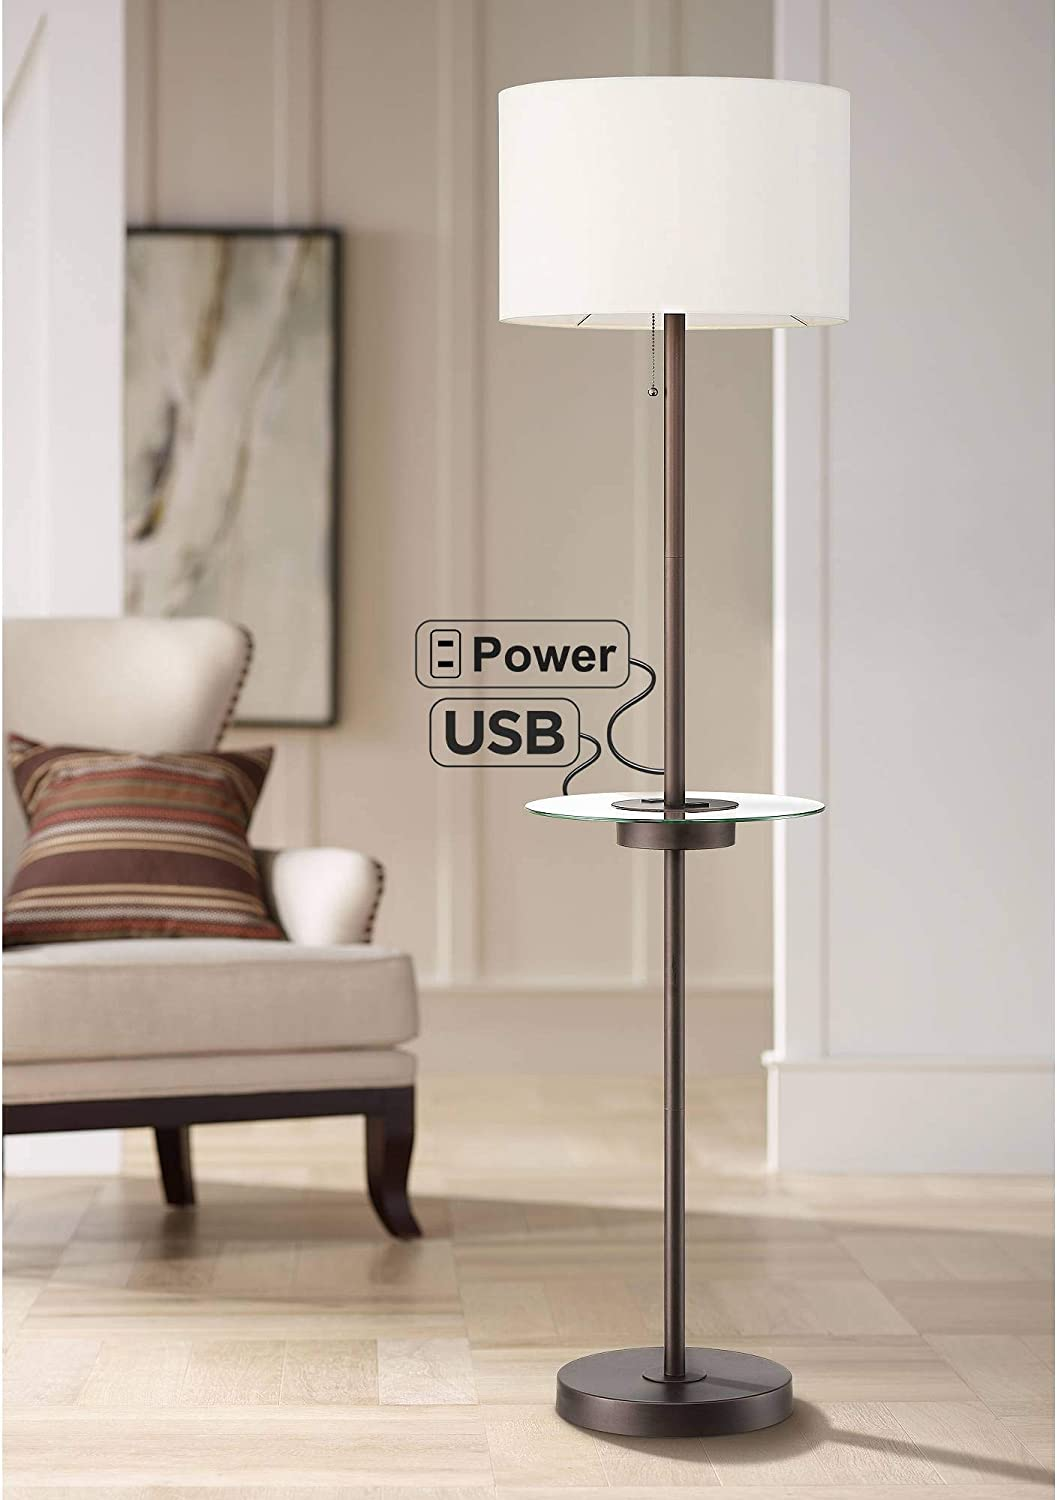 Caper Modern Floor Lamp with Table USB and AC Power Outlet in Base Bronze Metal Off White Fabric Drum Shade for Living Room Reading Bedroom Office - 360 Lighting